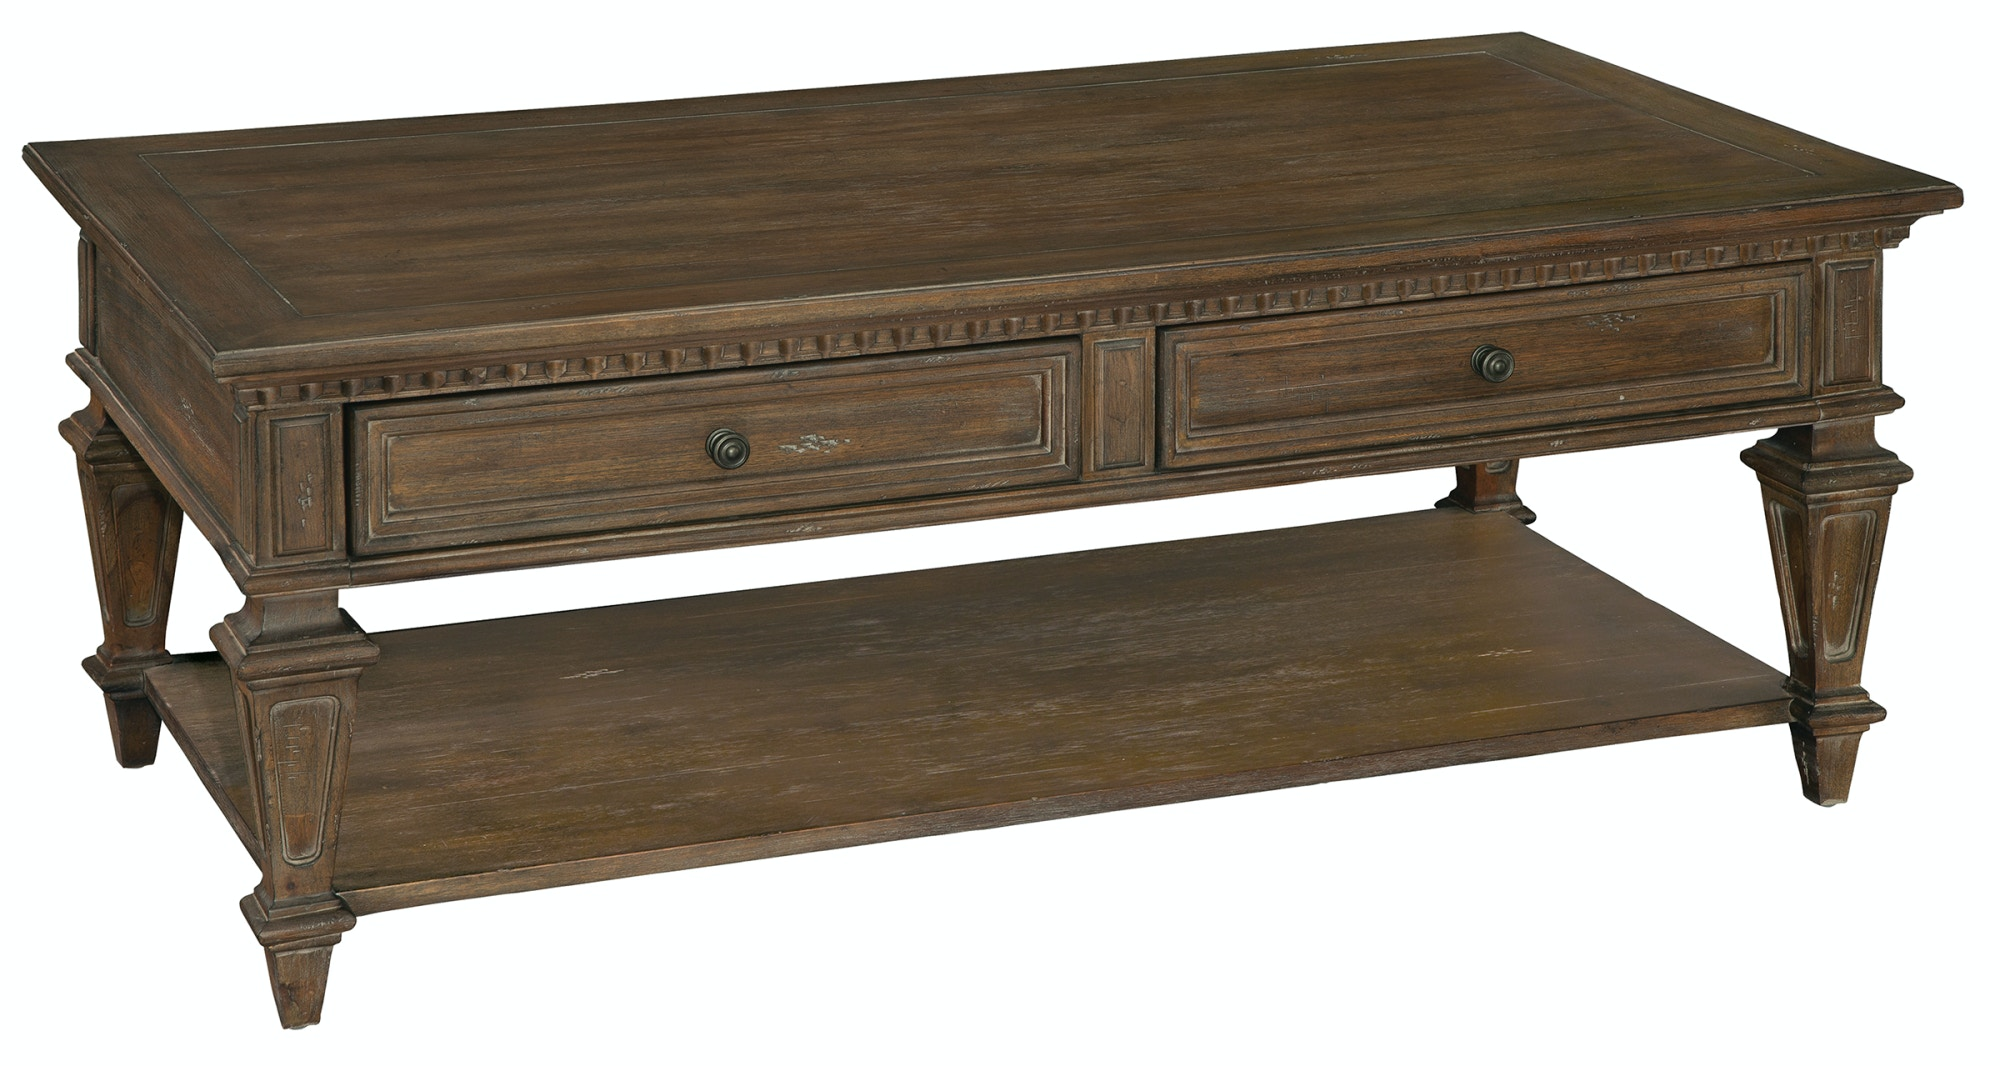 Hekman Furniture Turtle Creek Occasional Rec Drawer Coffee Table 1 9200  Hekman